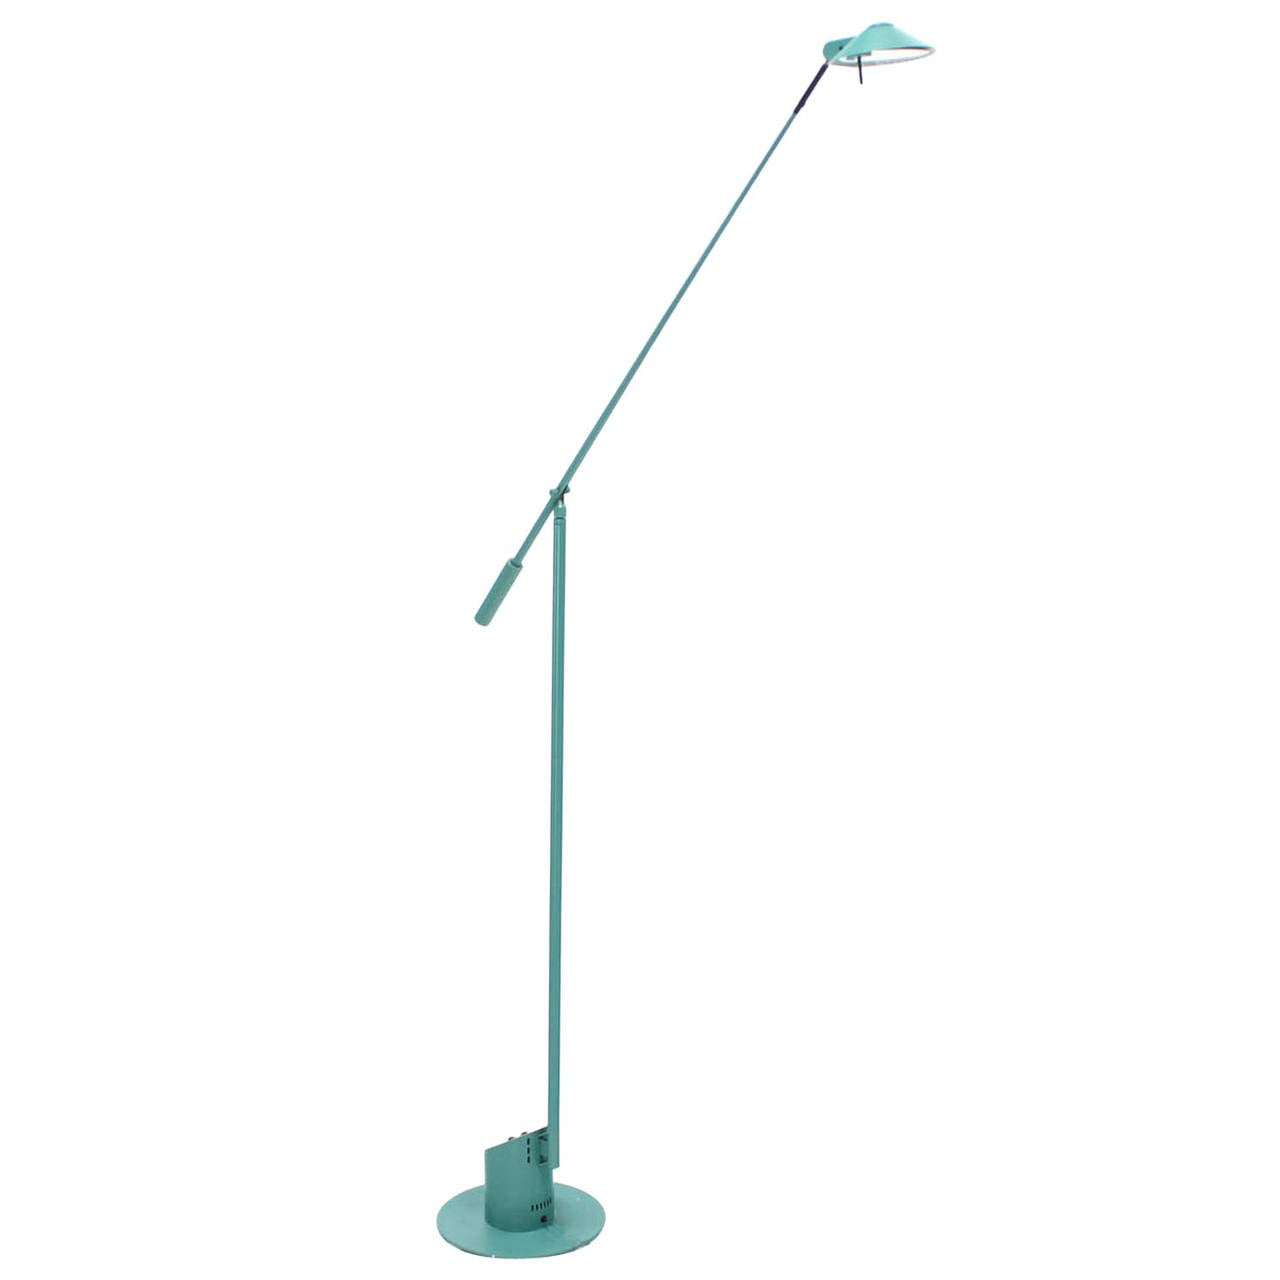 Robert Sonneman for Kovacs Adjustable Cantilever Floor Reading Lamp